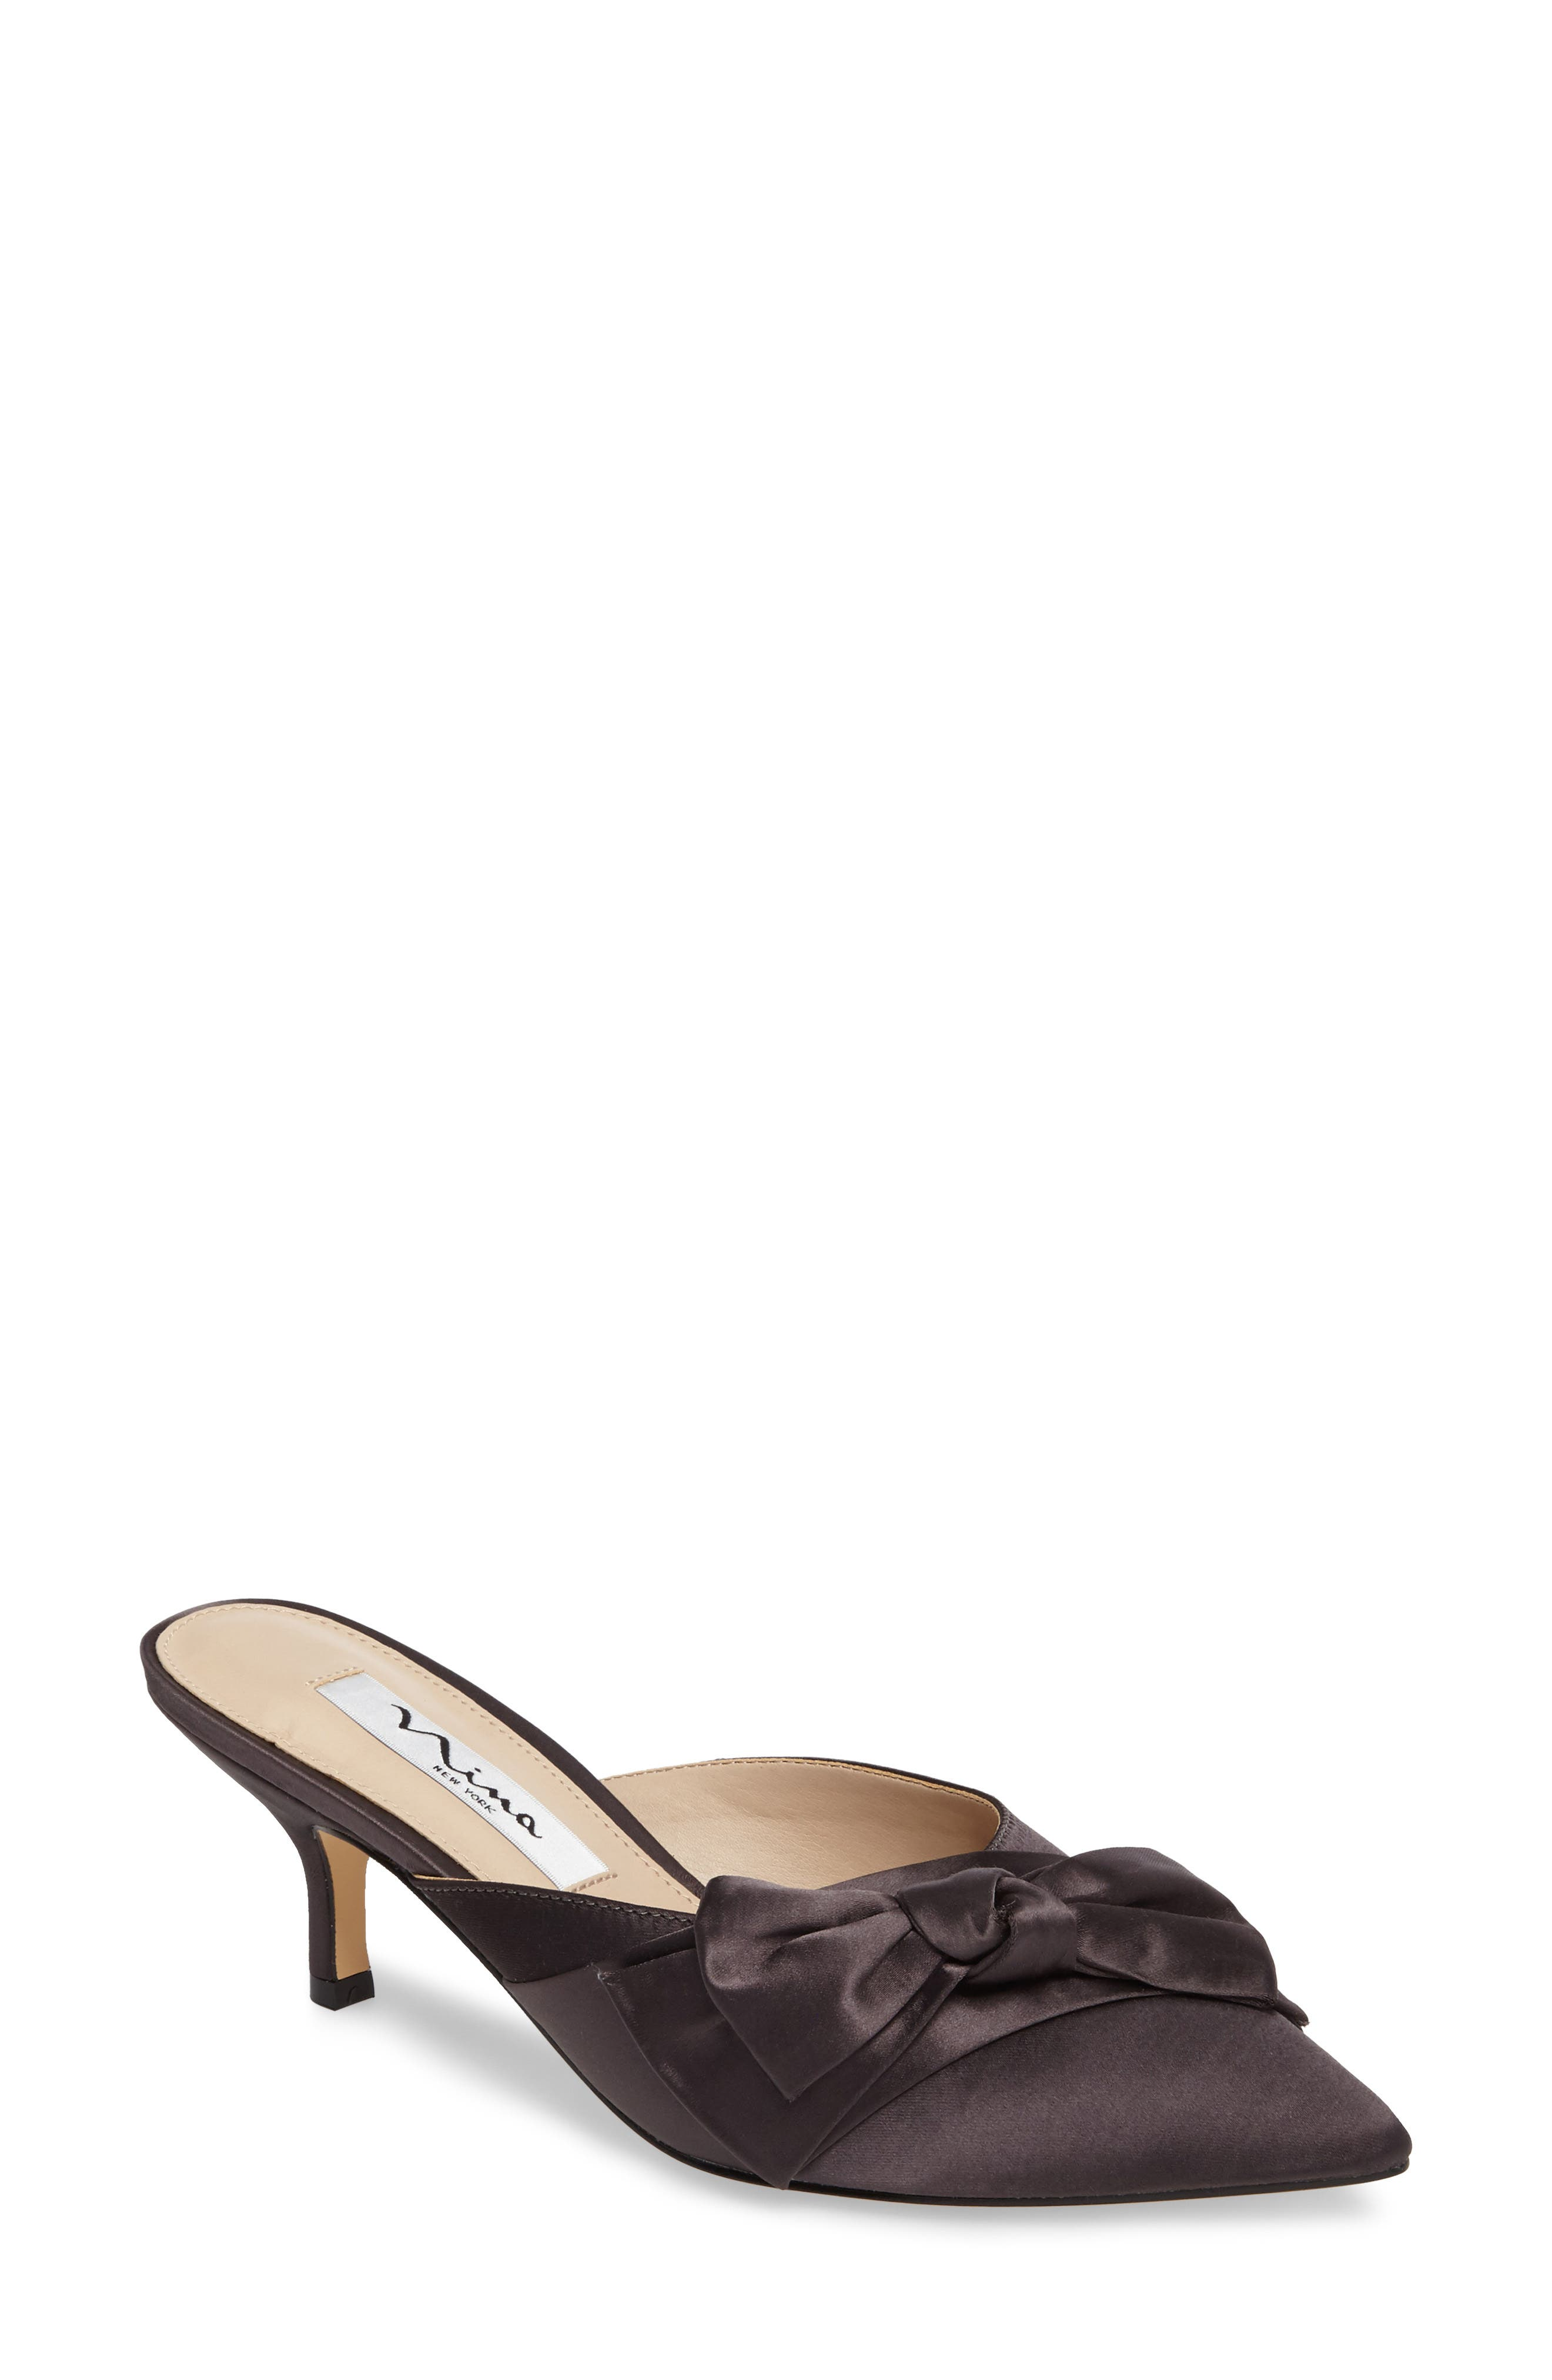 Timara Bow Mule,                         Main,                         color, 020